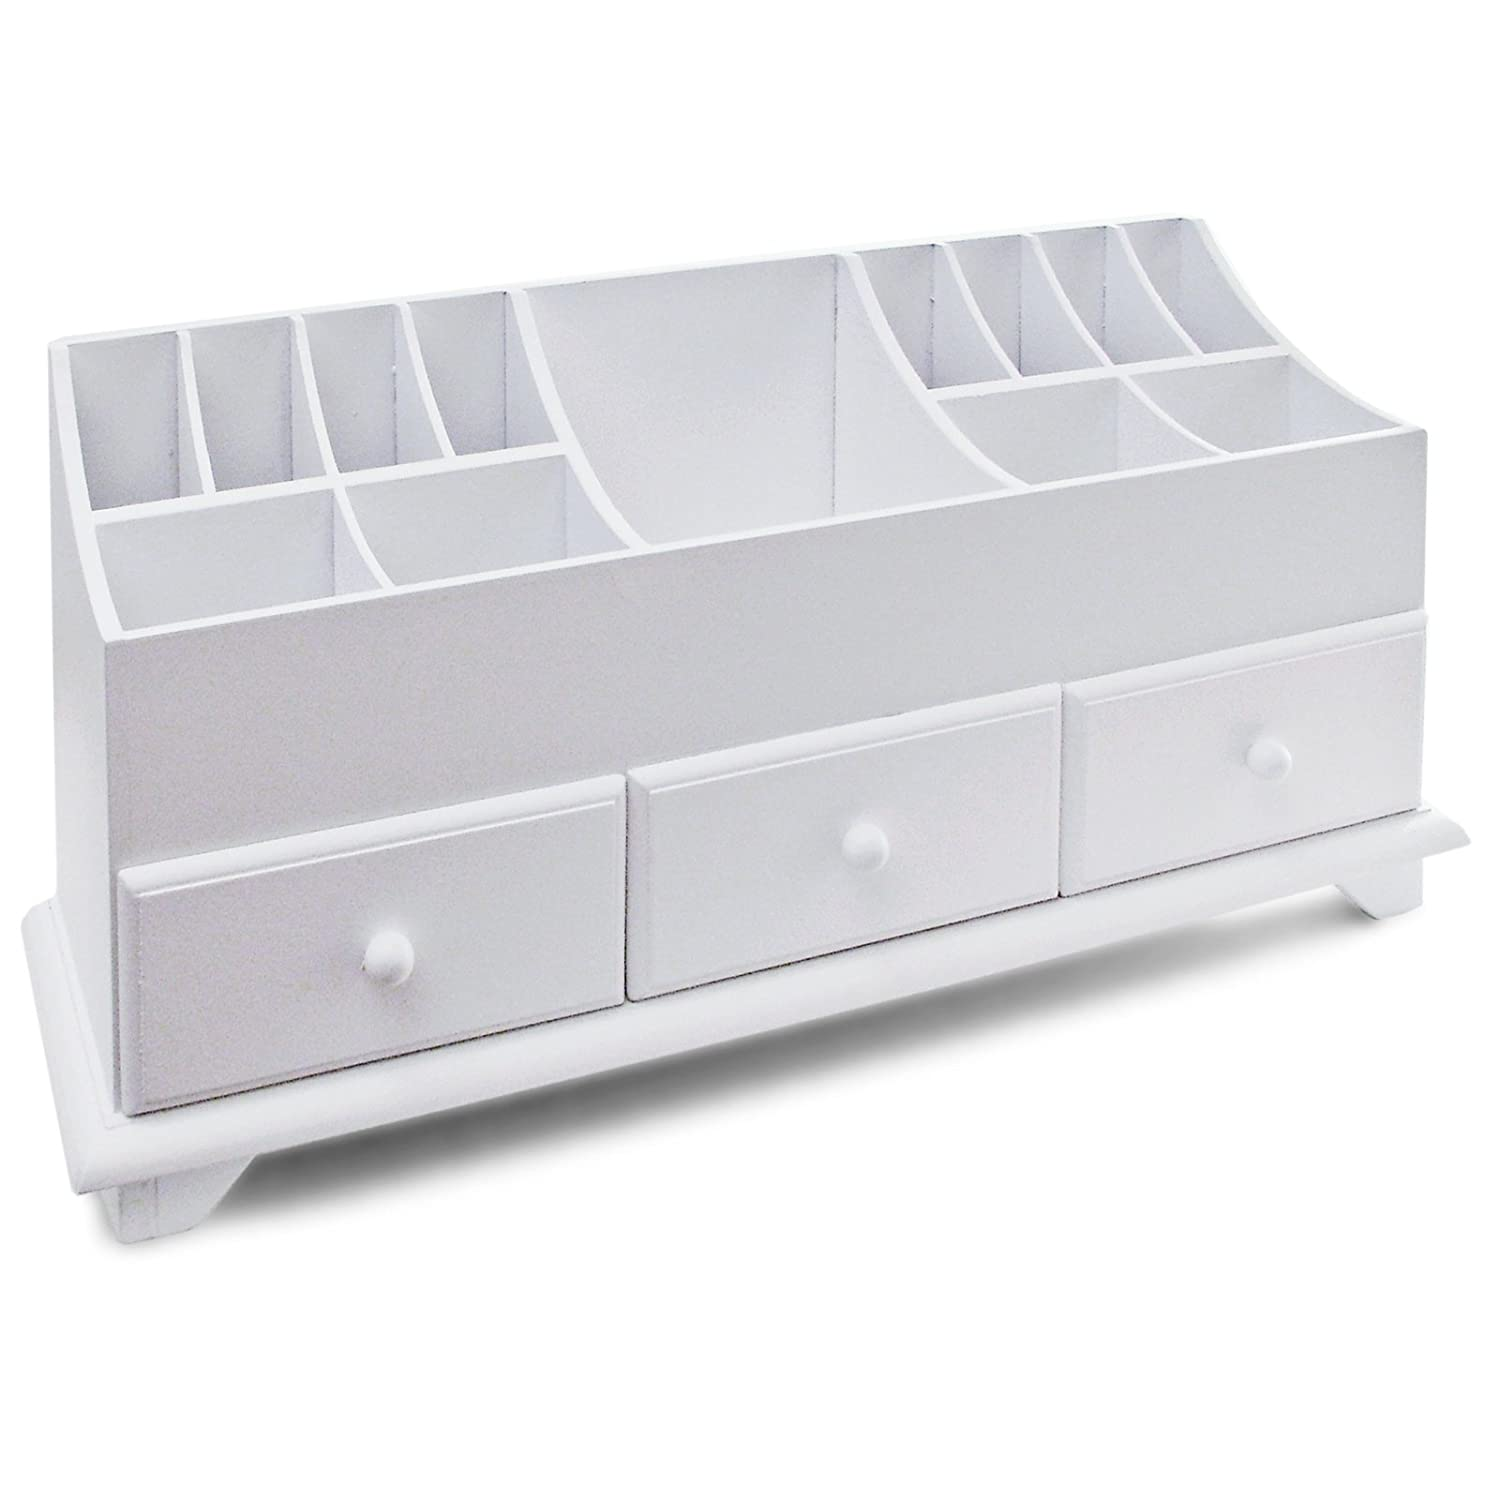 White Makeup Organizer Wooden Desk Tidy Caddy With Three Drawers And 13 Organiser